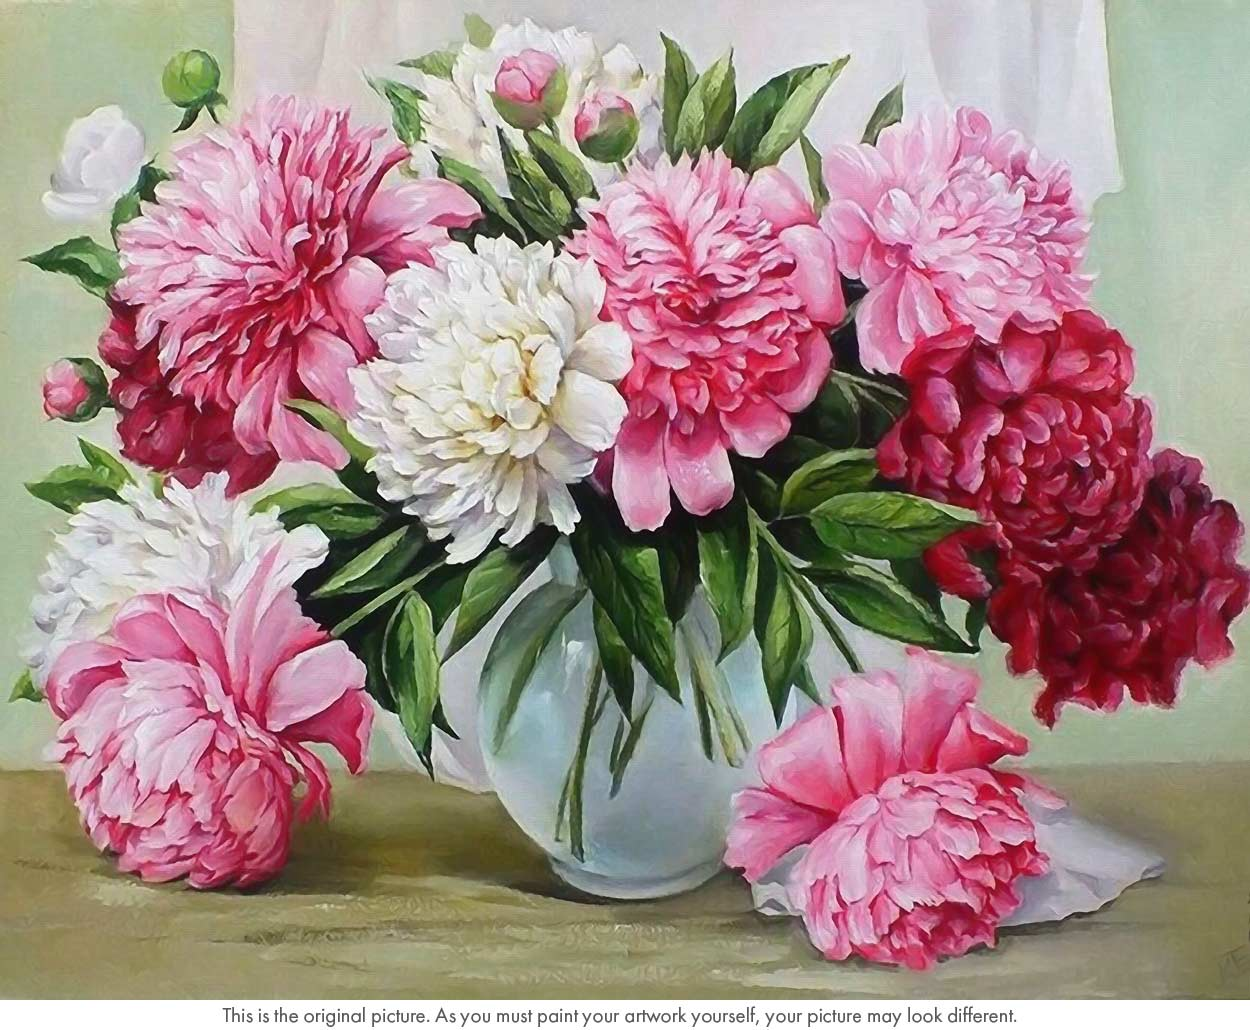 Red and white peonies flower still life paint by numbers say red and white peonies flower still life paint by numbers original mightylinksfo